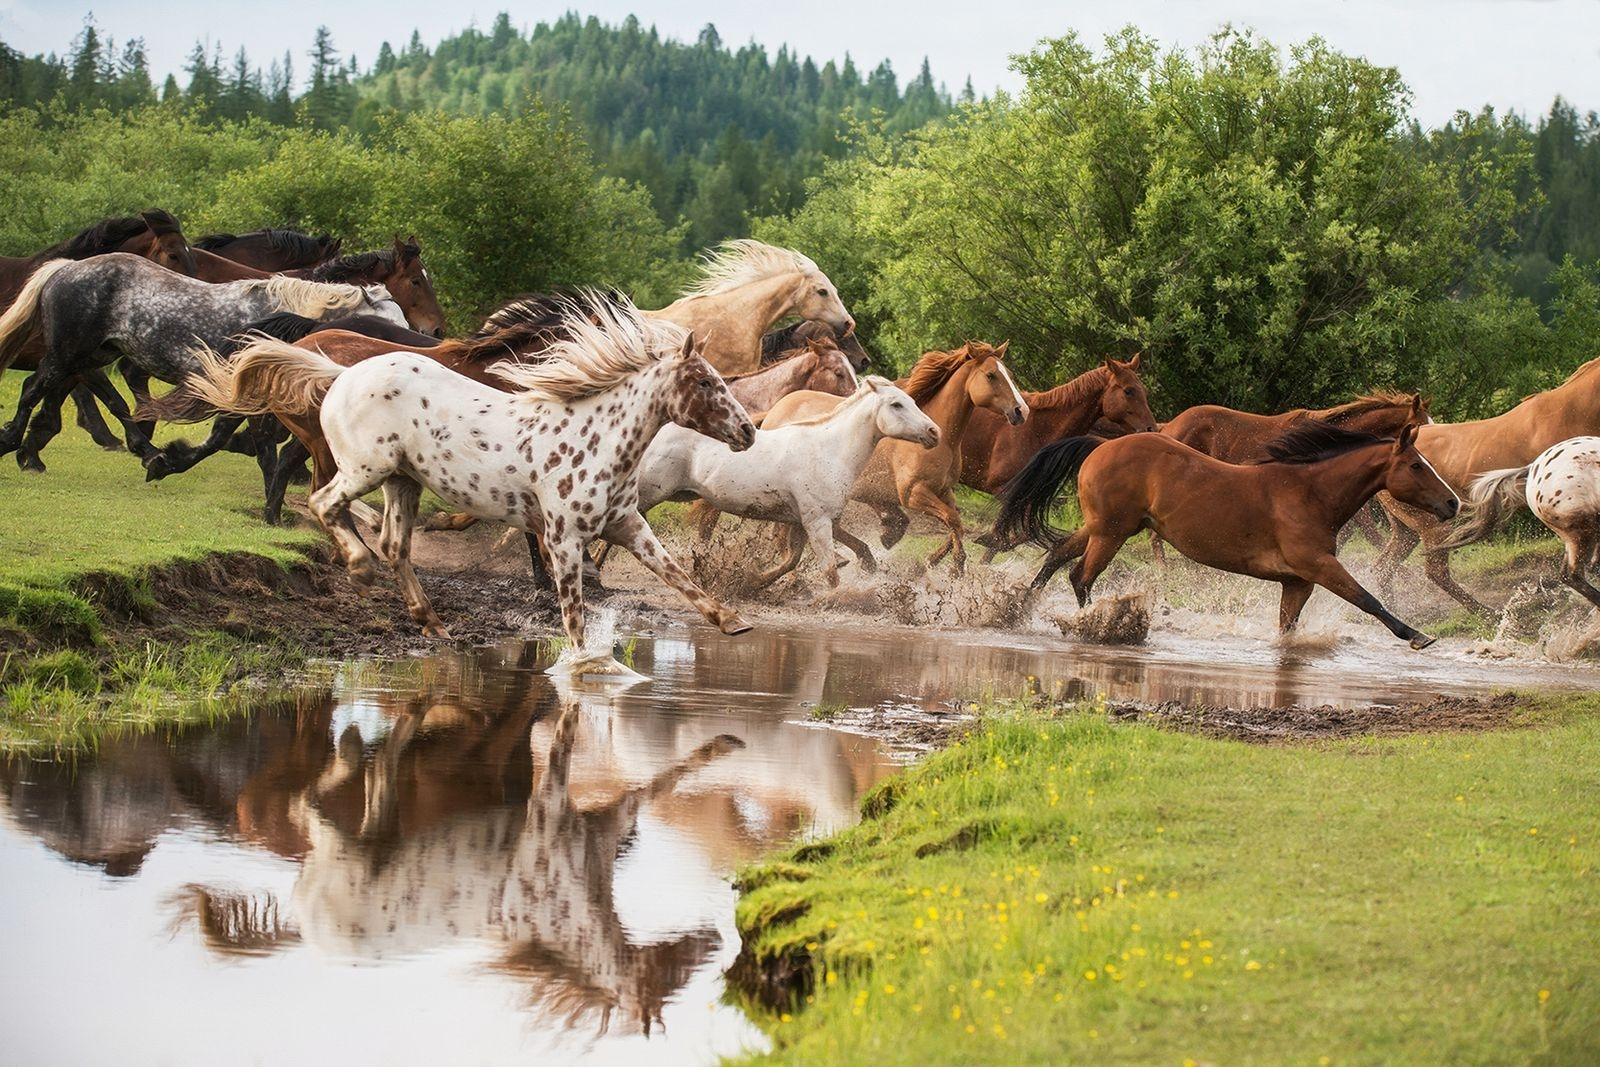 Photograph by Ginny Worthington, National Geographic Your Shot